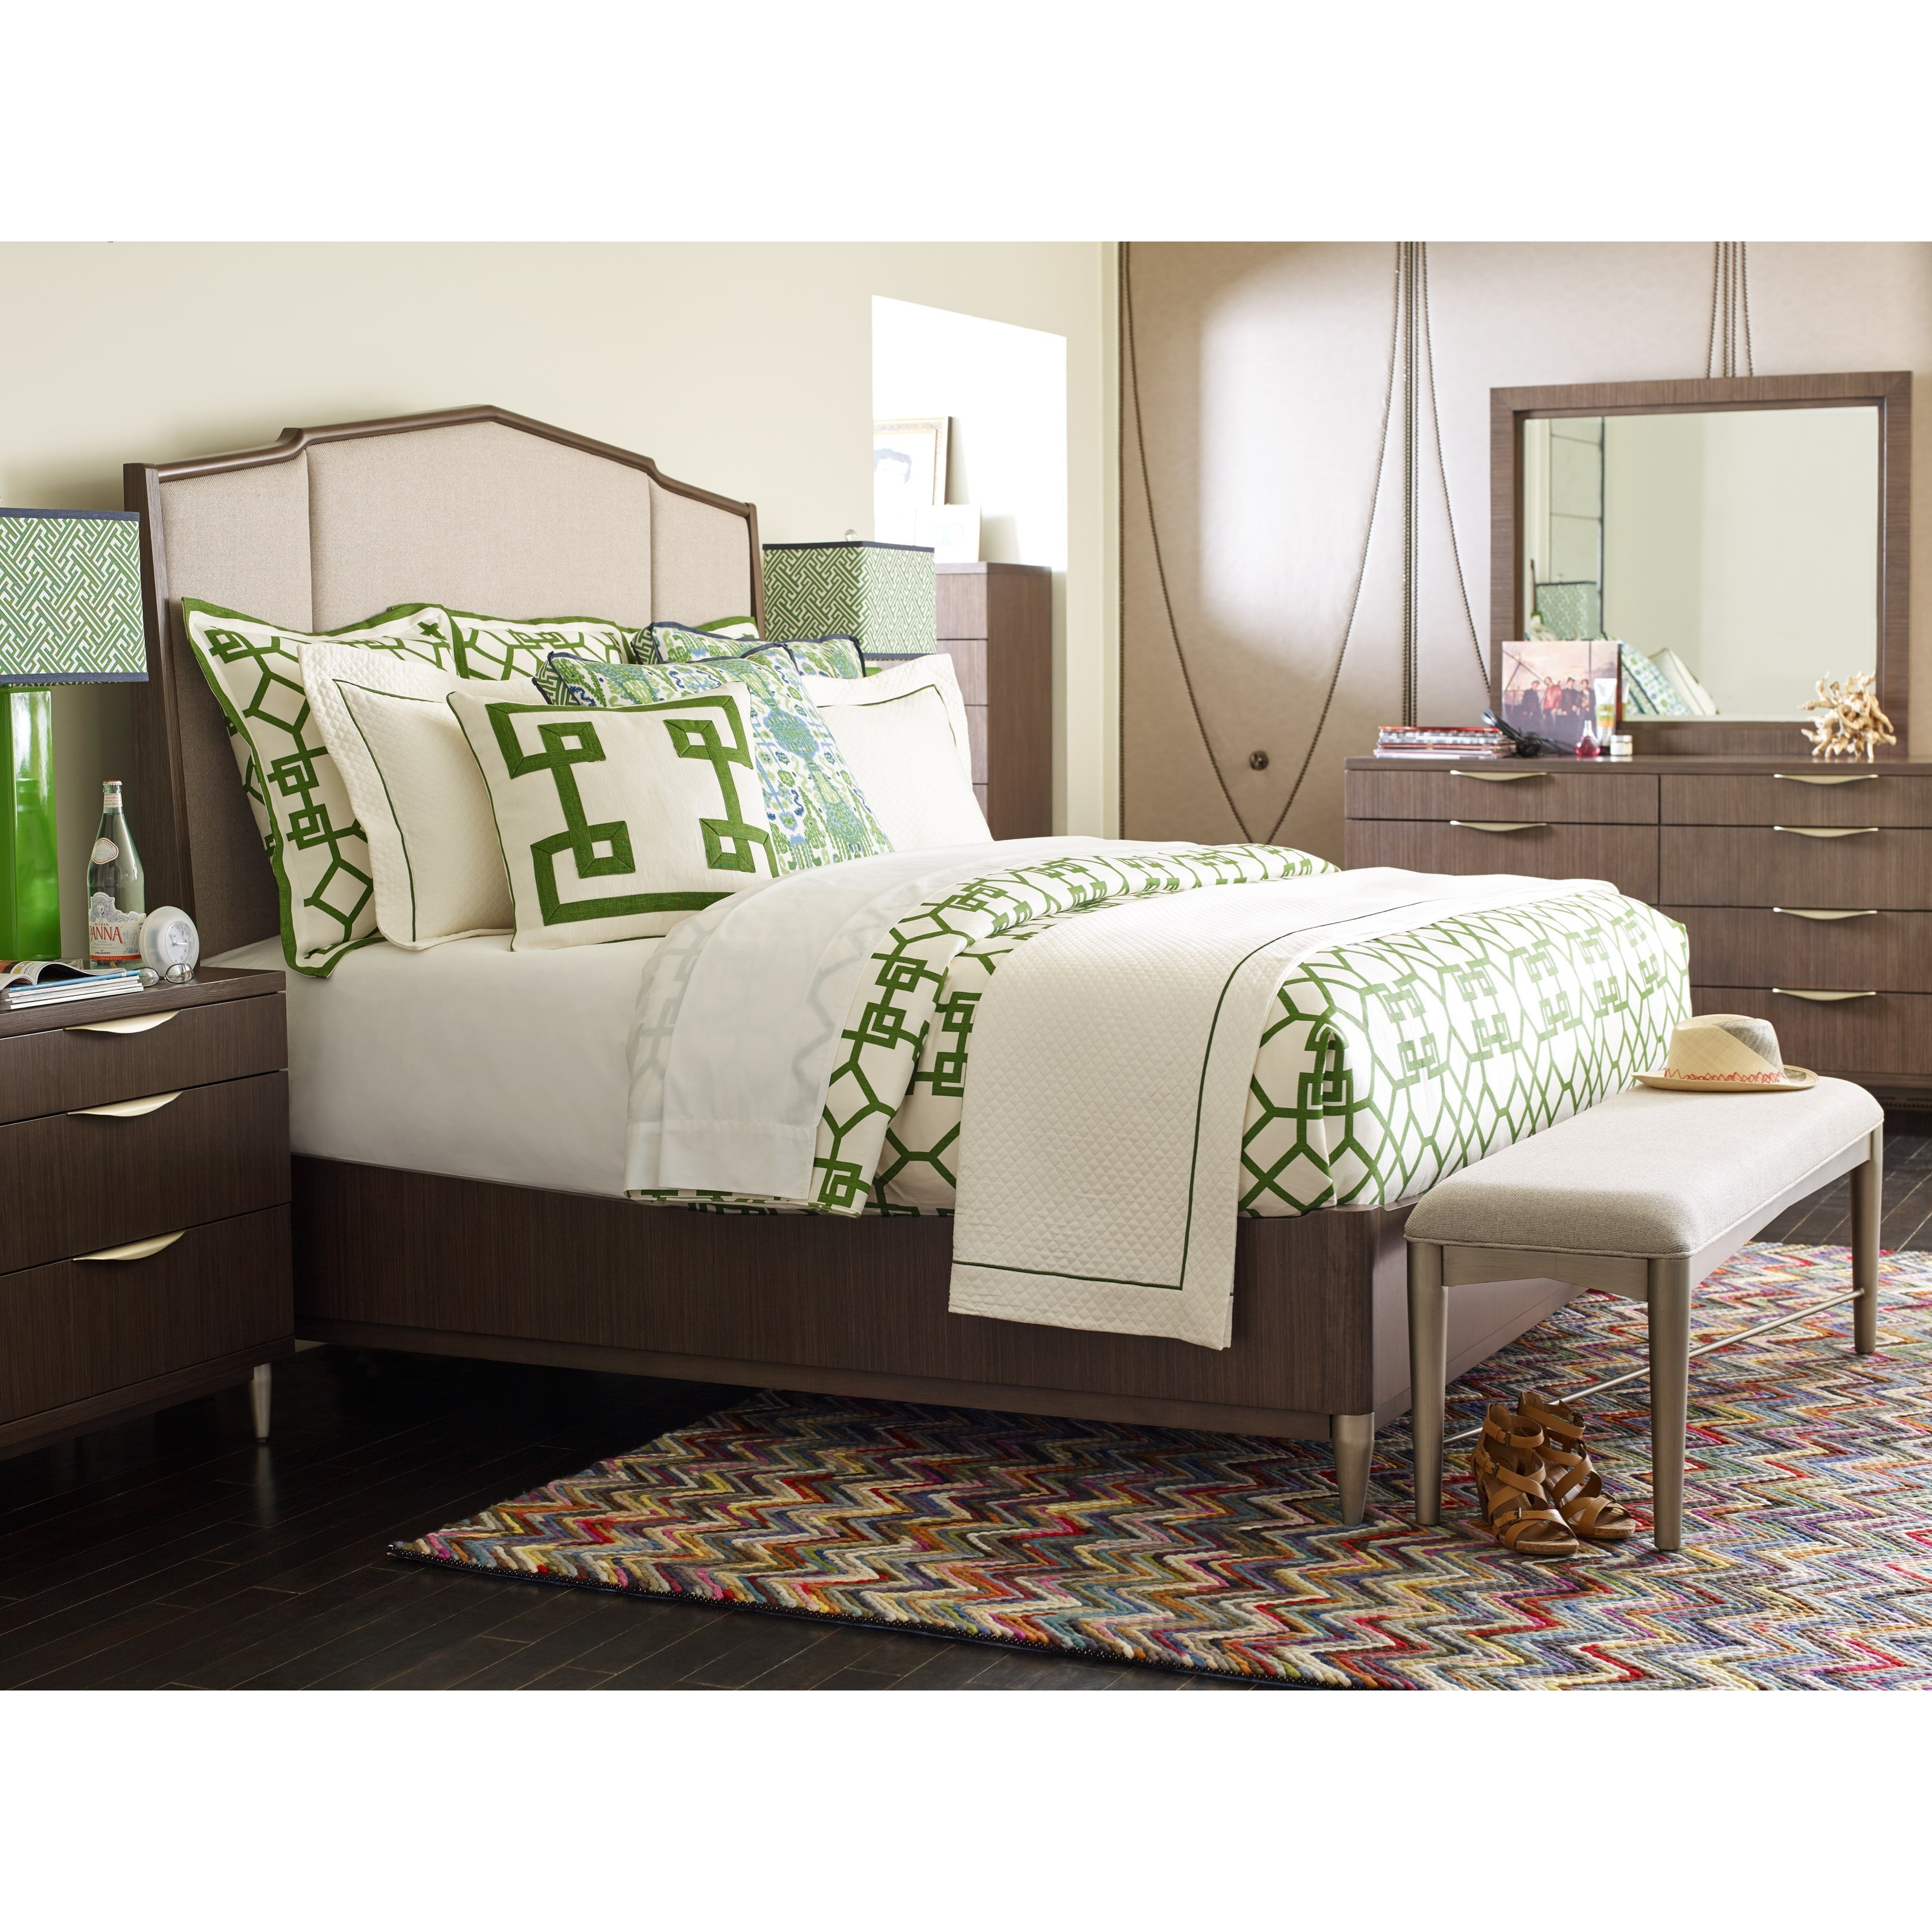 Rachael Ray Home by Legacy Classic Soho King Bedroom Group - Item Number: 6020 K Bedroom Group 1